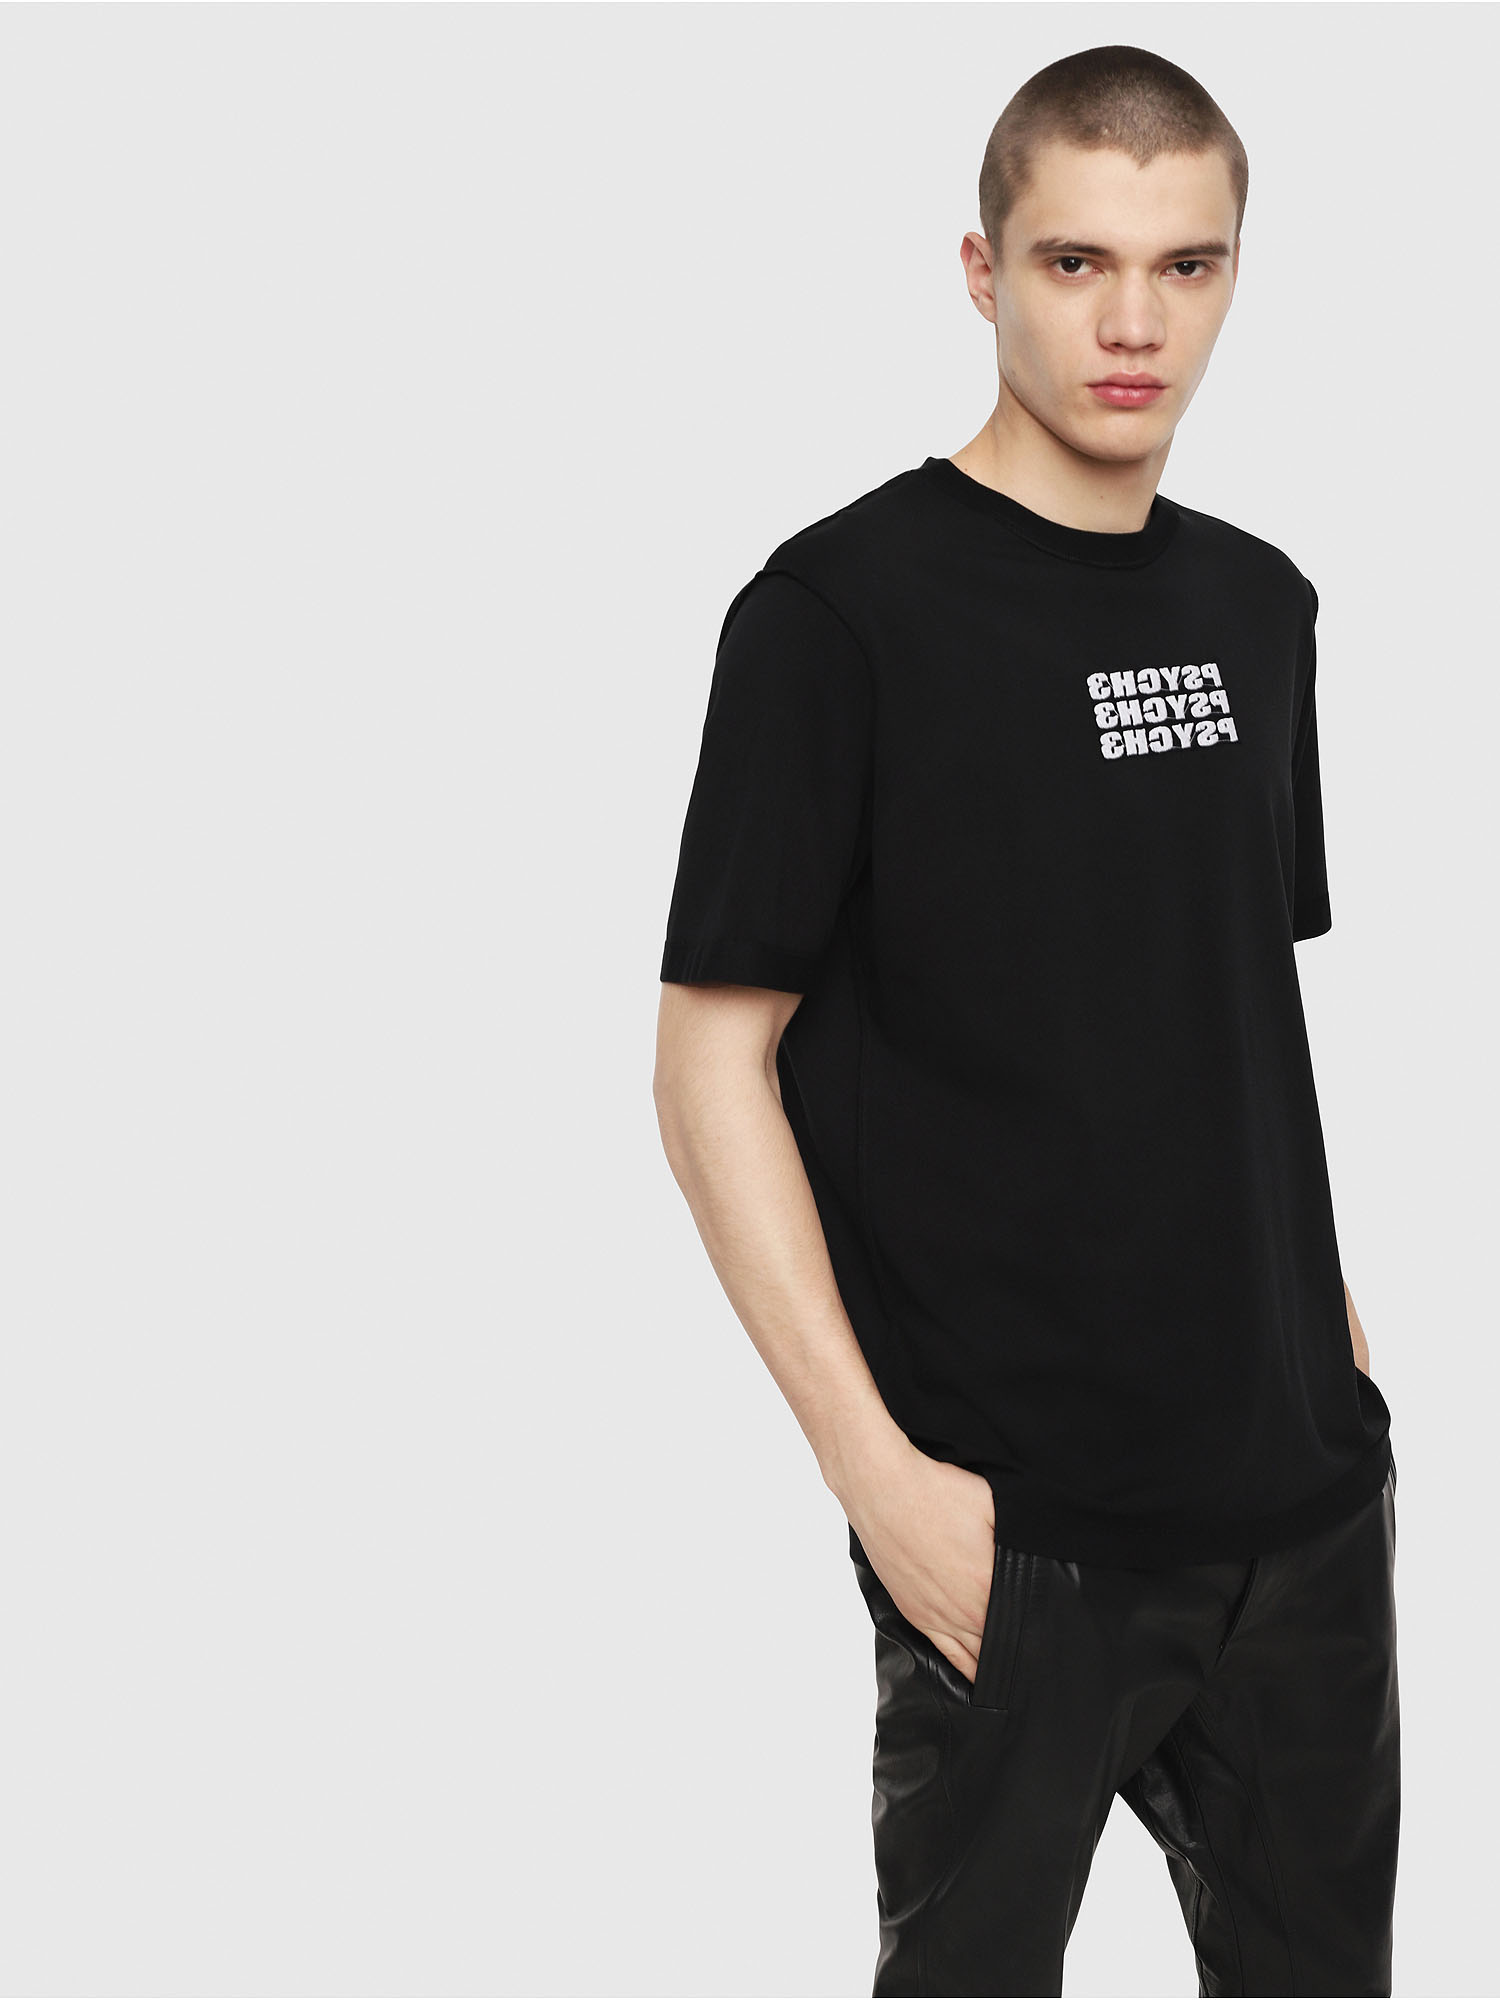 Diesel - T-JUST-Y9,  - T-Shirts - Image 1